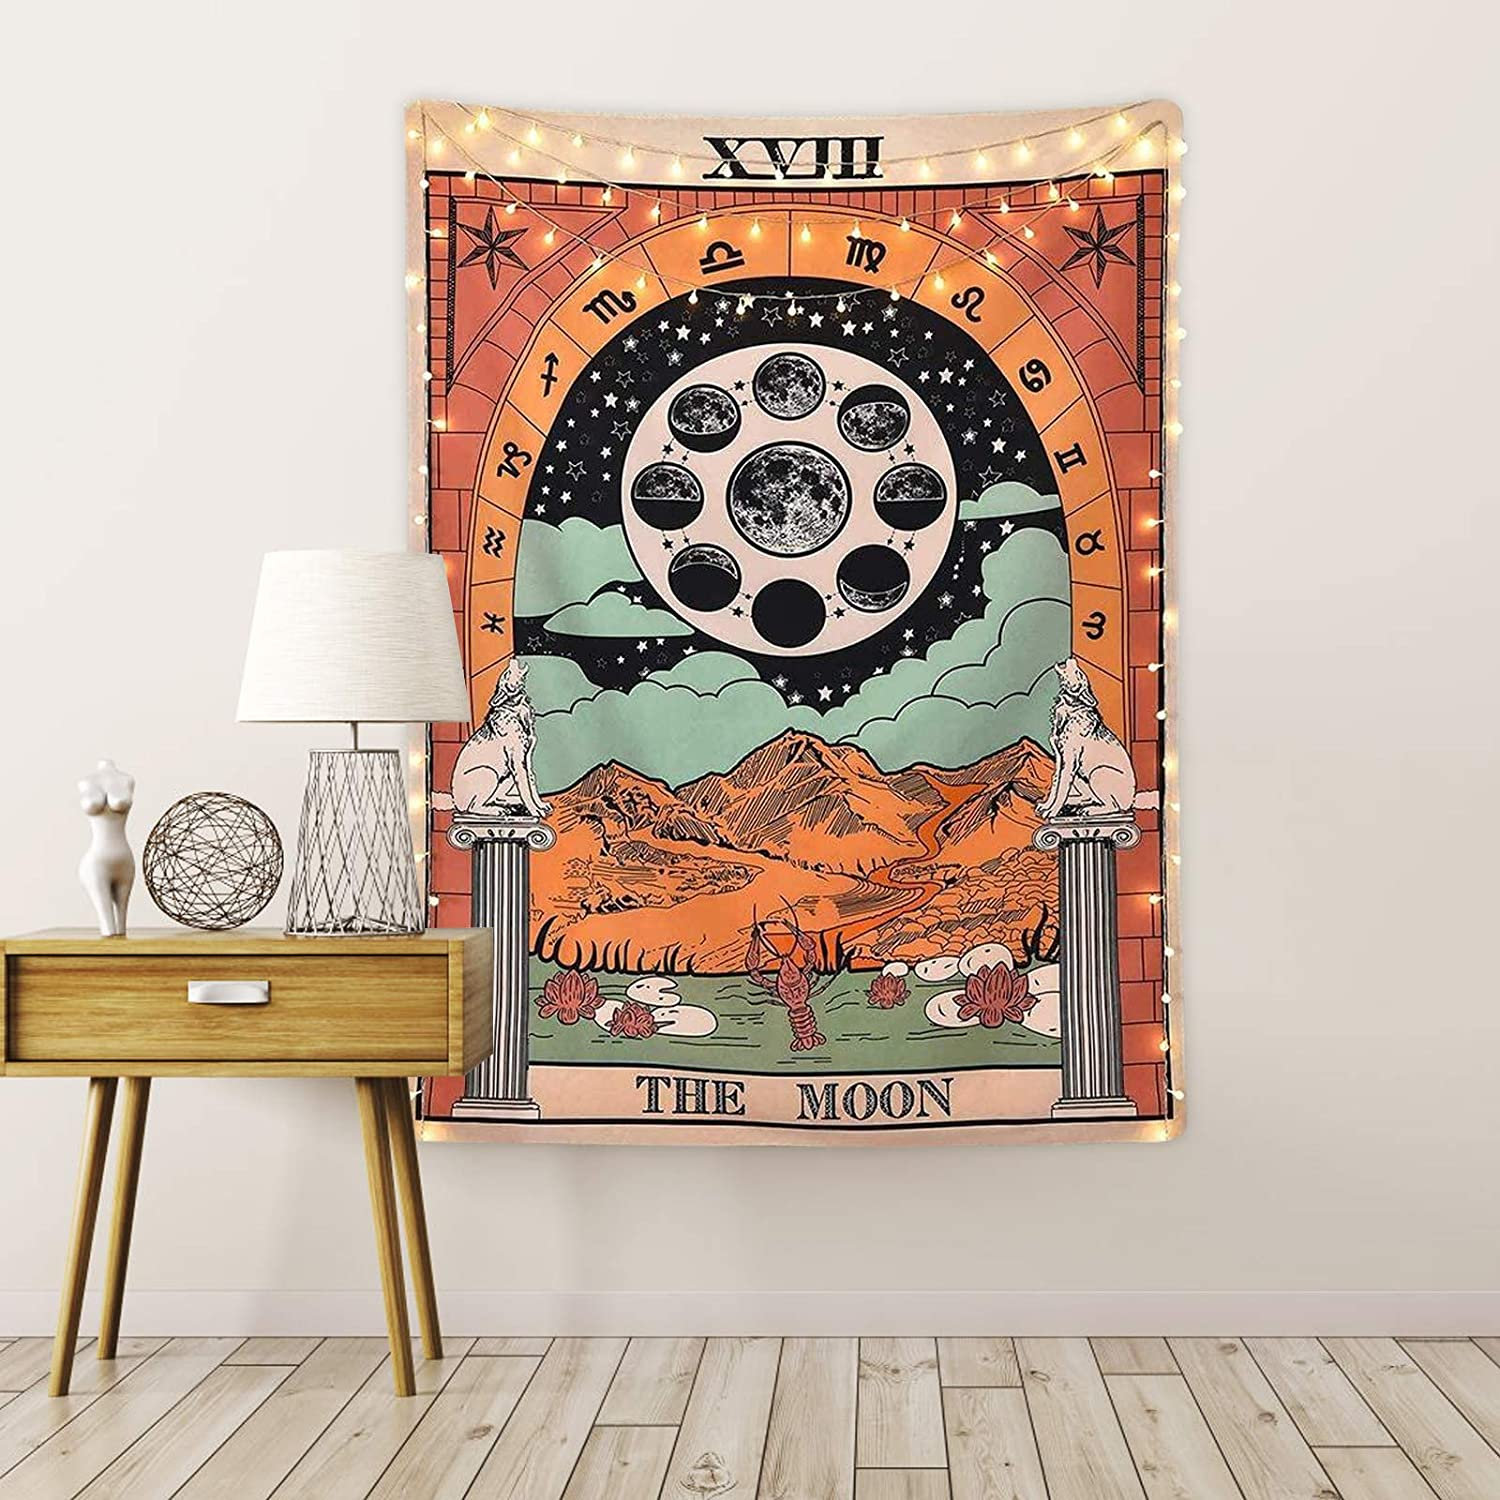 specialty shop The Moon Tarot Card Tapetsry sma Europe Medieval Mysterious High material Flag